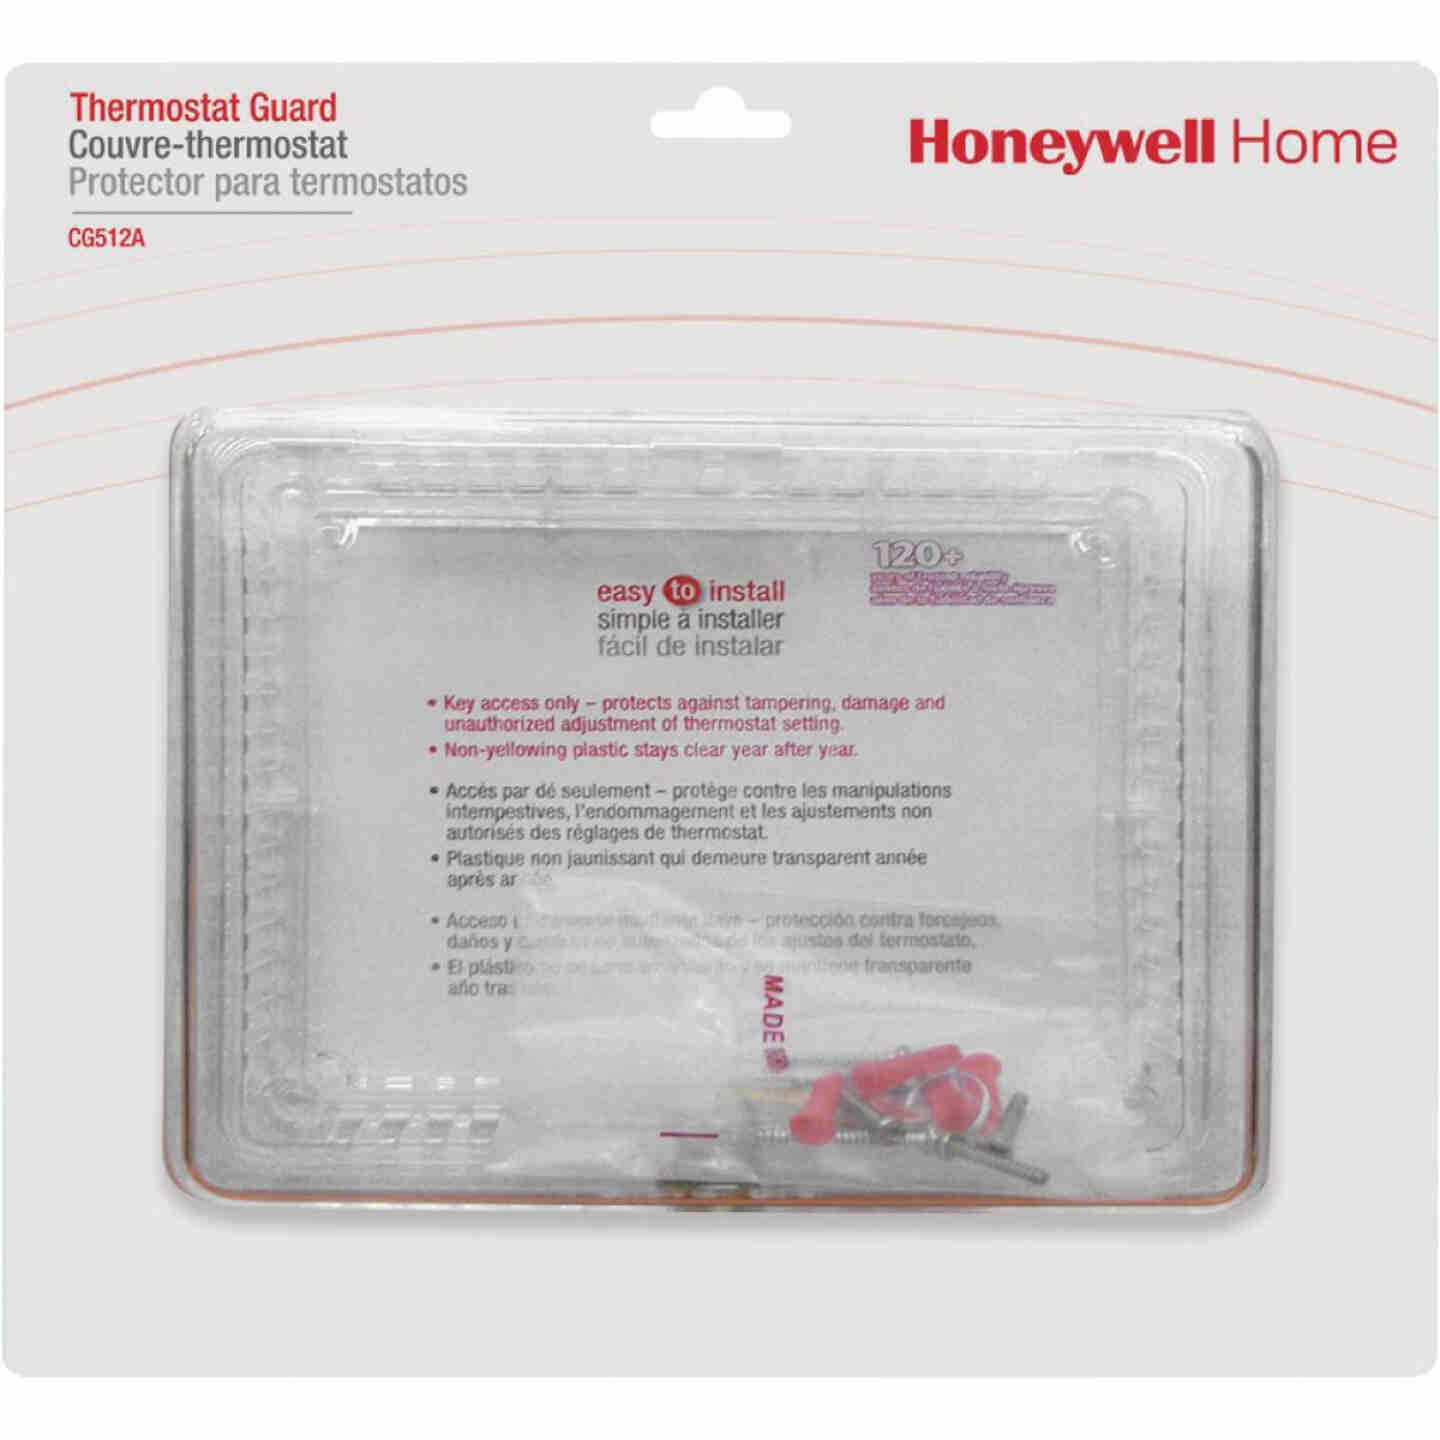 Honeywell Home Clear 9-3/4 In. 7-1/4 In. Thermostat Guard Image 1